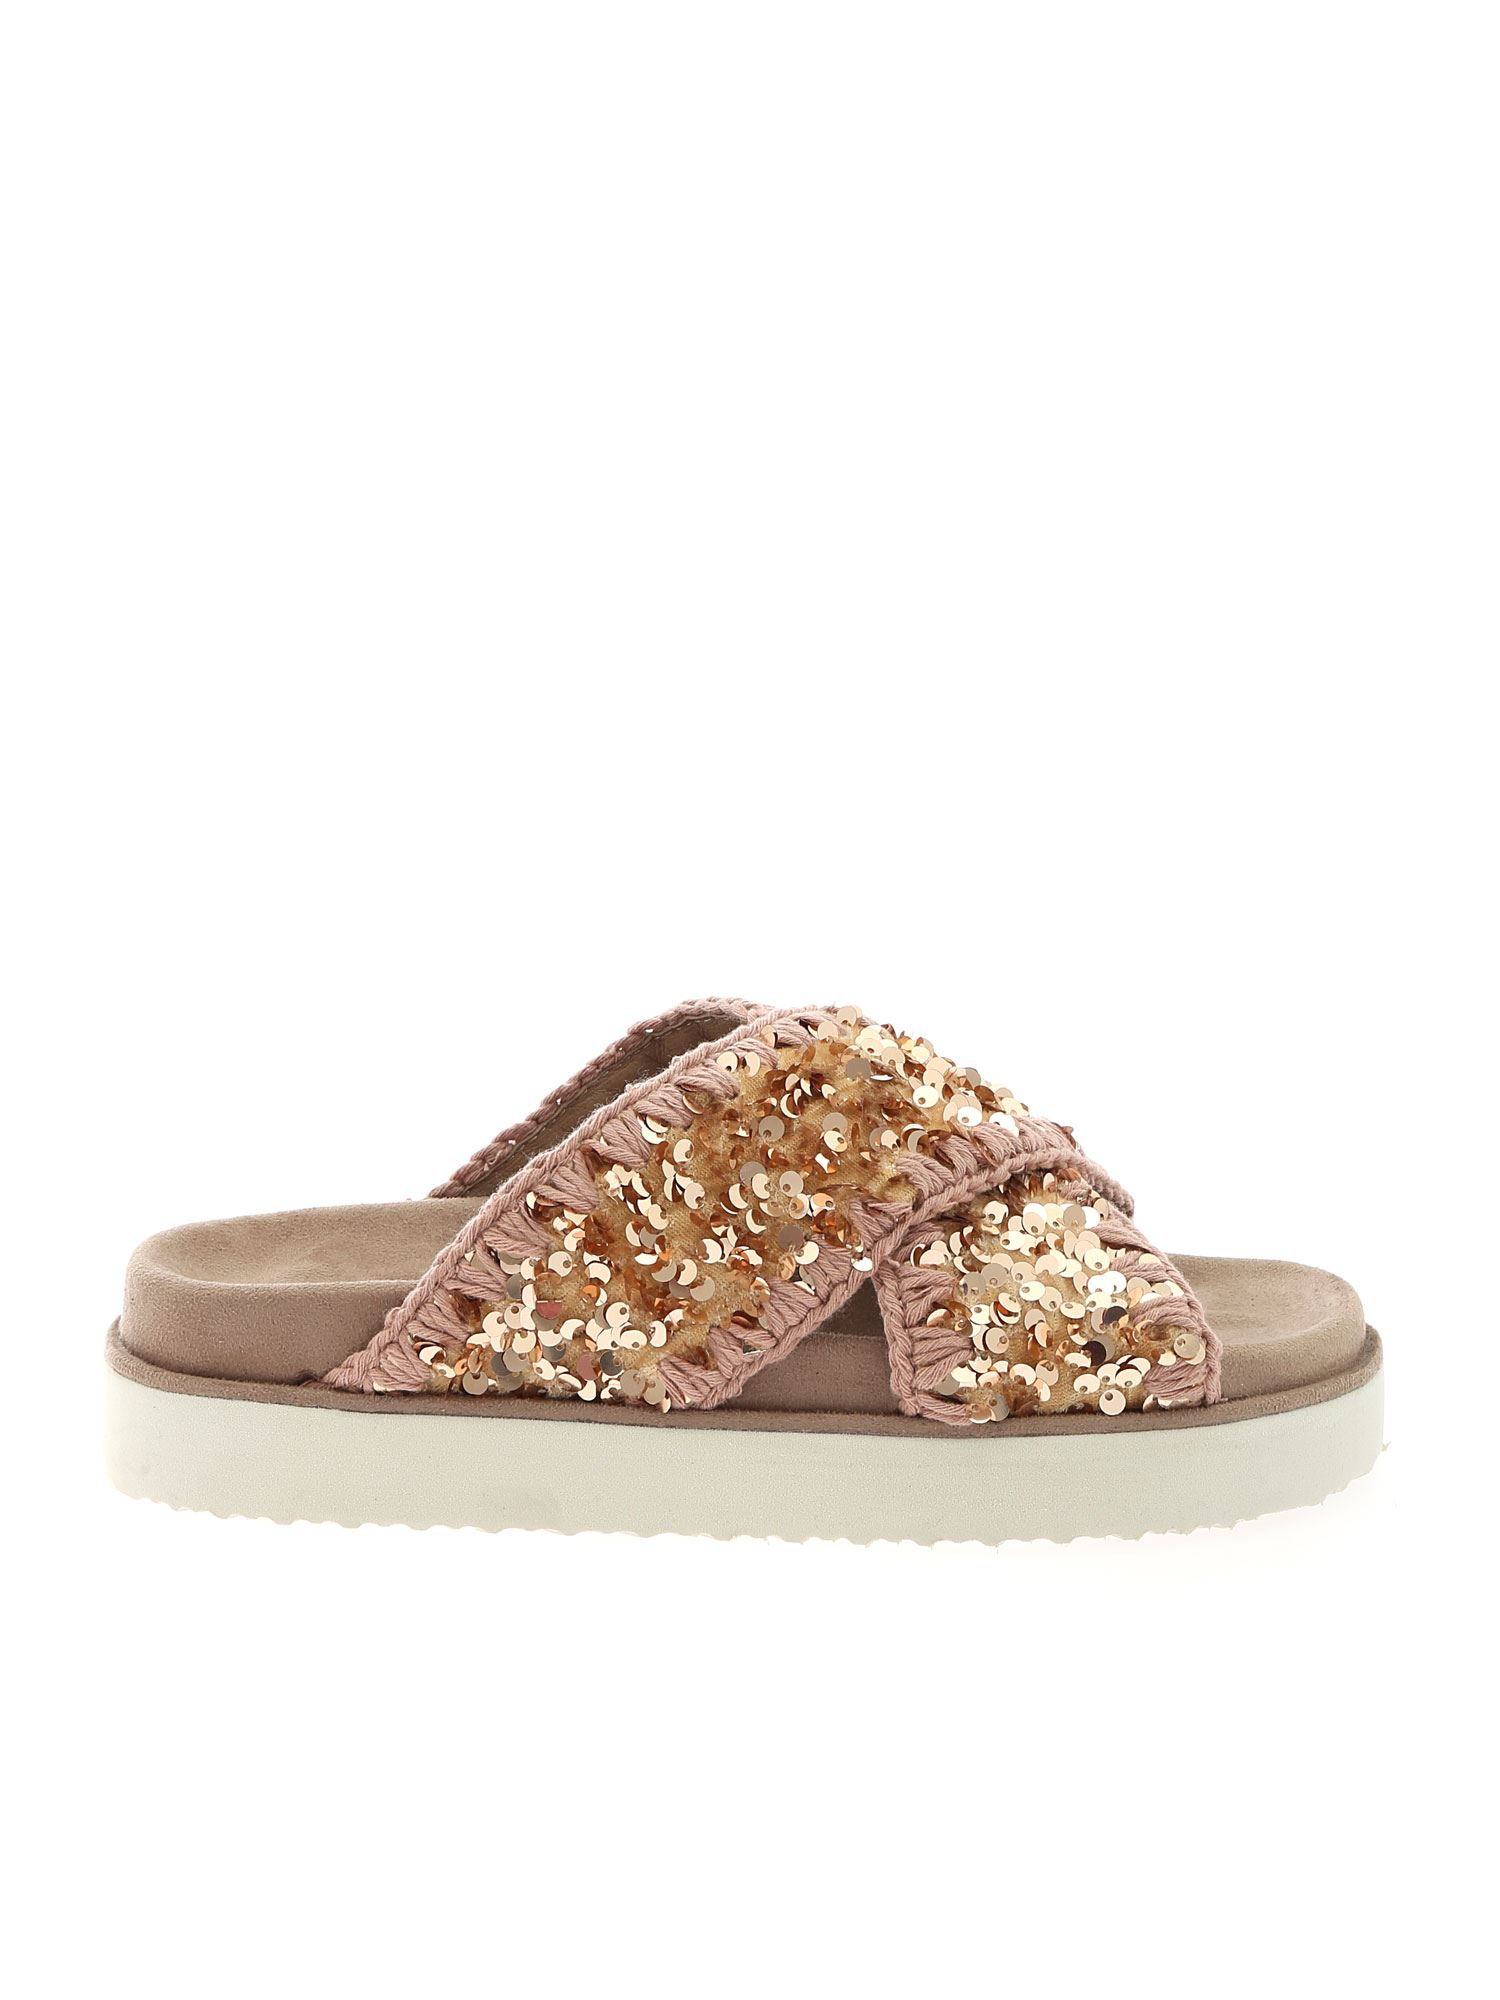 Mou CRISS-CROSS BIO SLIPPERS IN ANTIQUE PINK